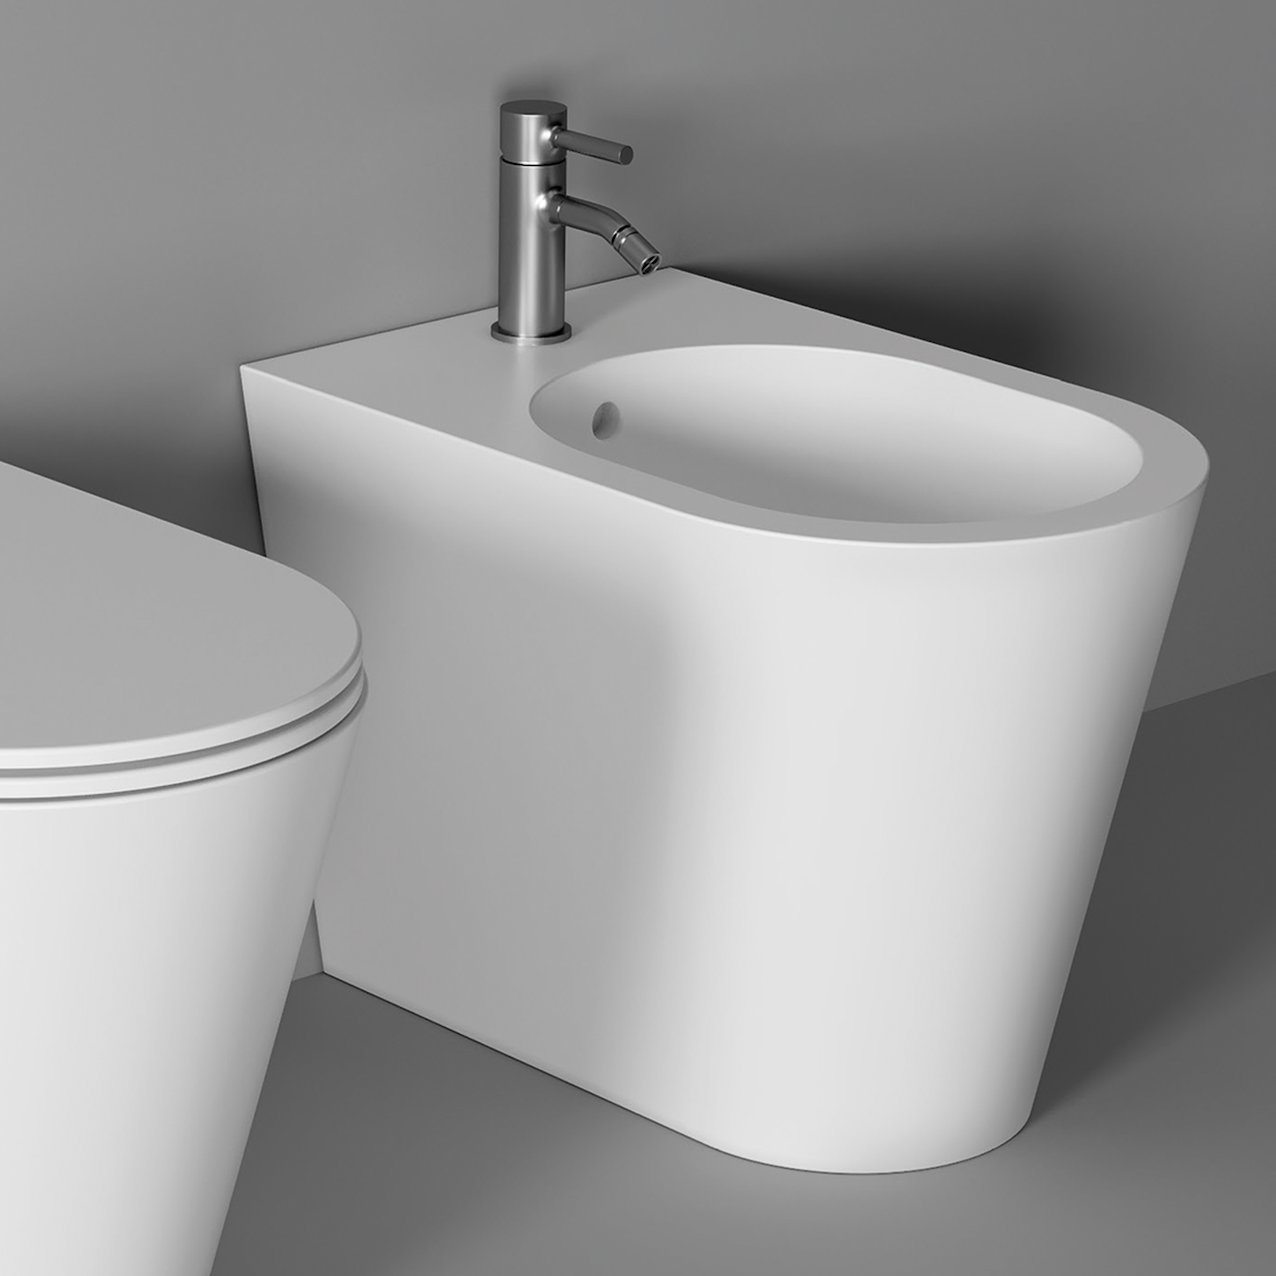 Bidet Hide Round back to wall